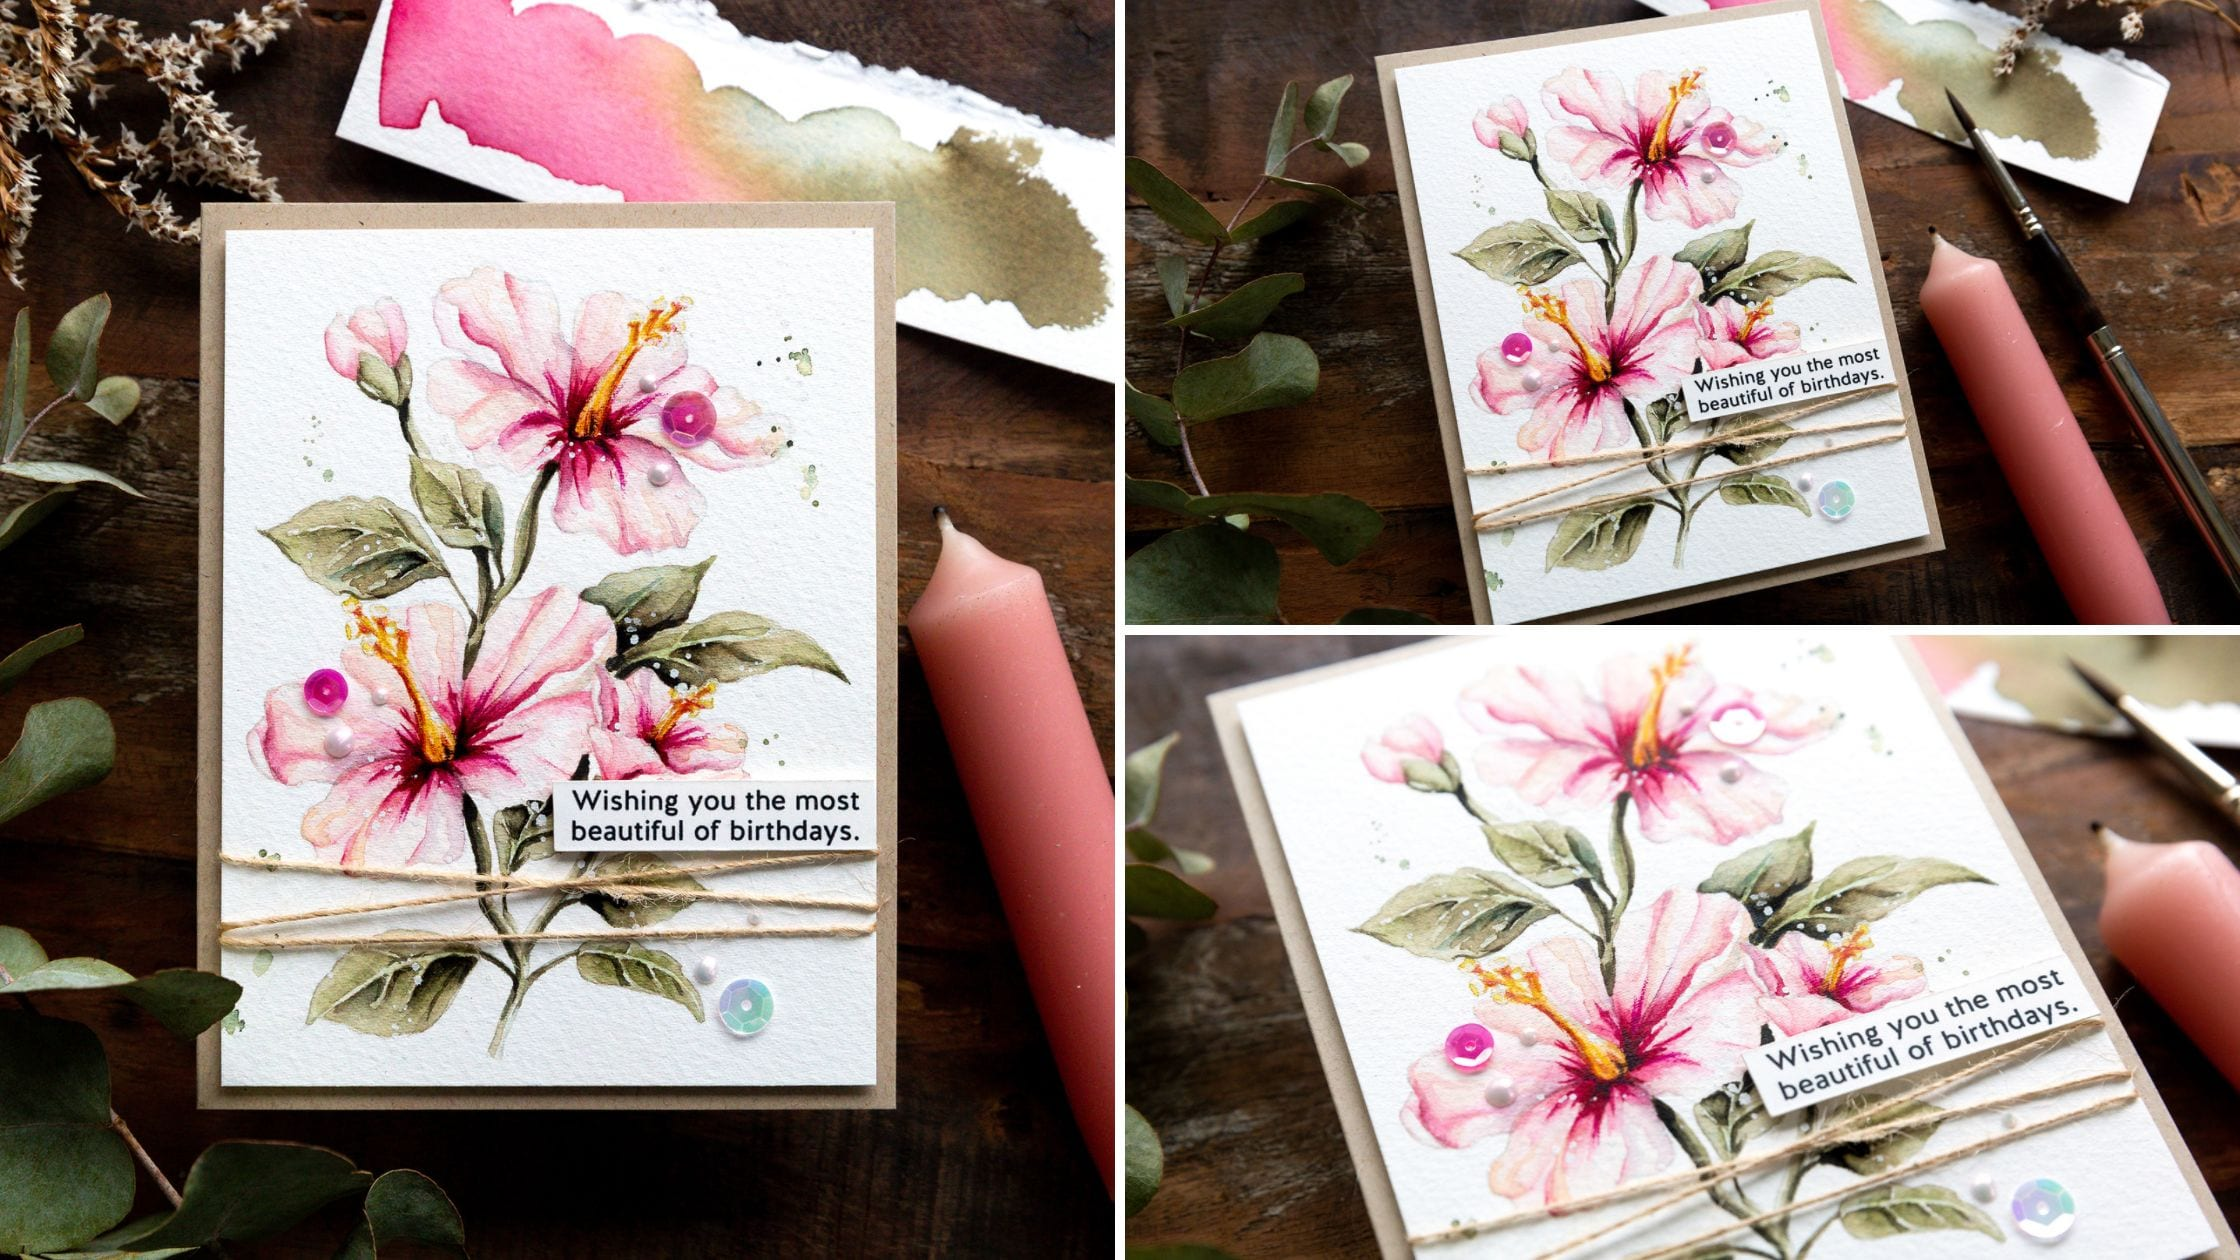 Video tutorial - watercolour top tip - working in layers. Handmade card design by Debby Hughes using supplies from Simon Says Stamp #handmadecards #cardmaking #cardmakingideas #cardmakingtechniques  #cardmakingtutorials #handmadecardideas #simonsaysstamp